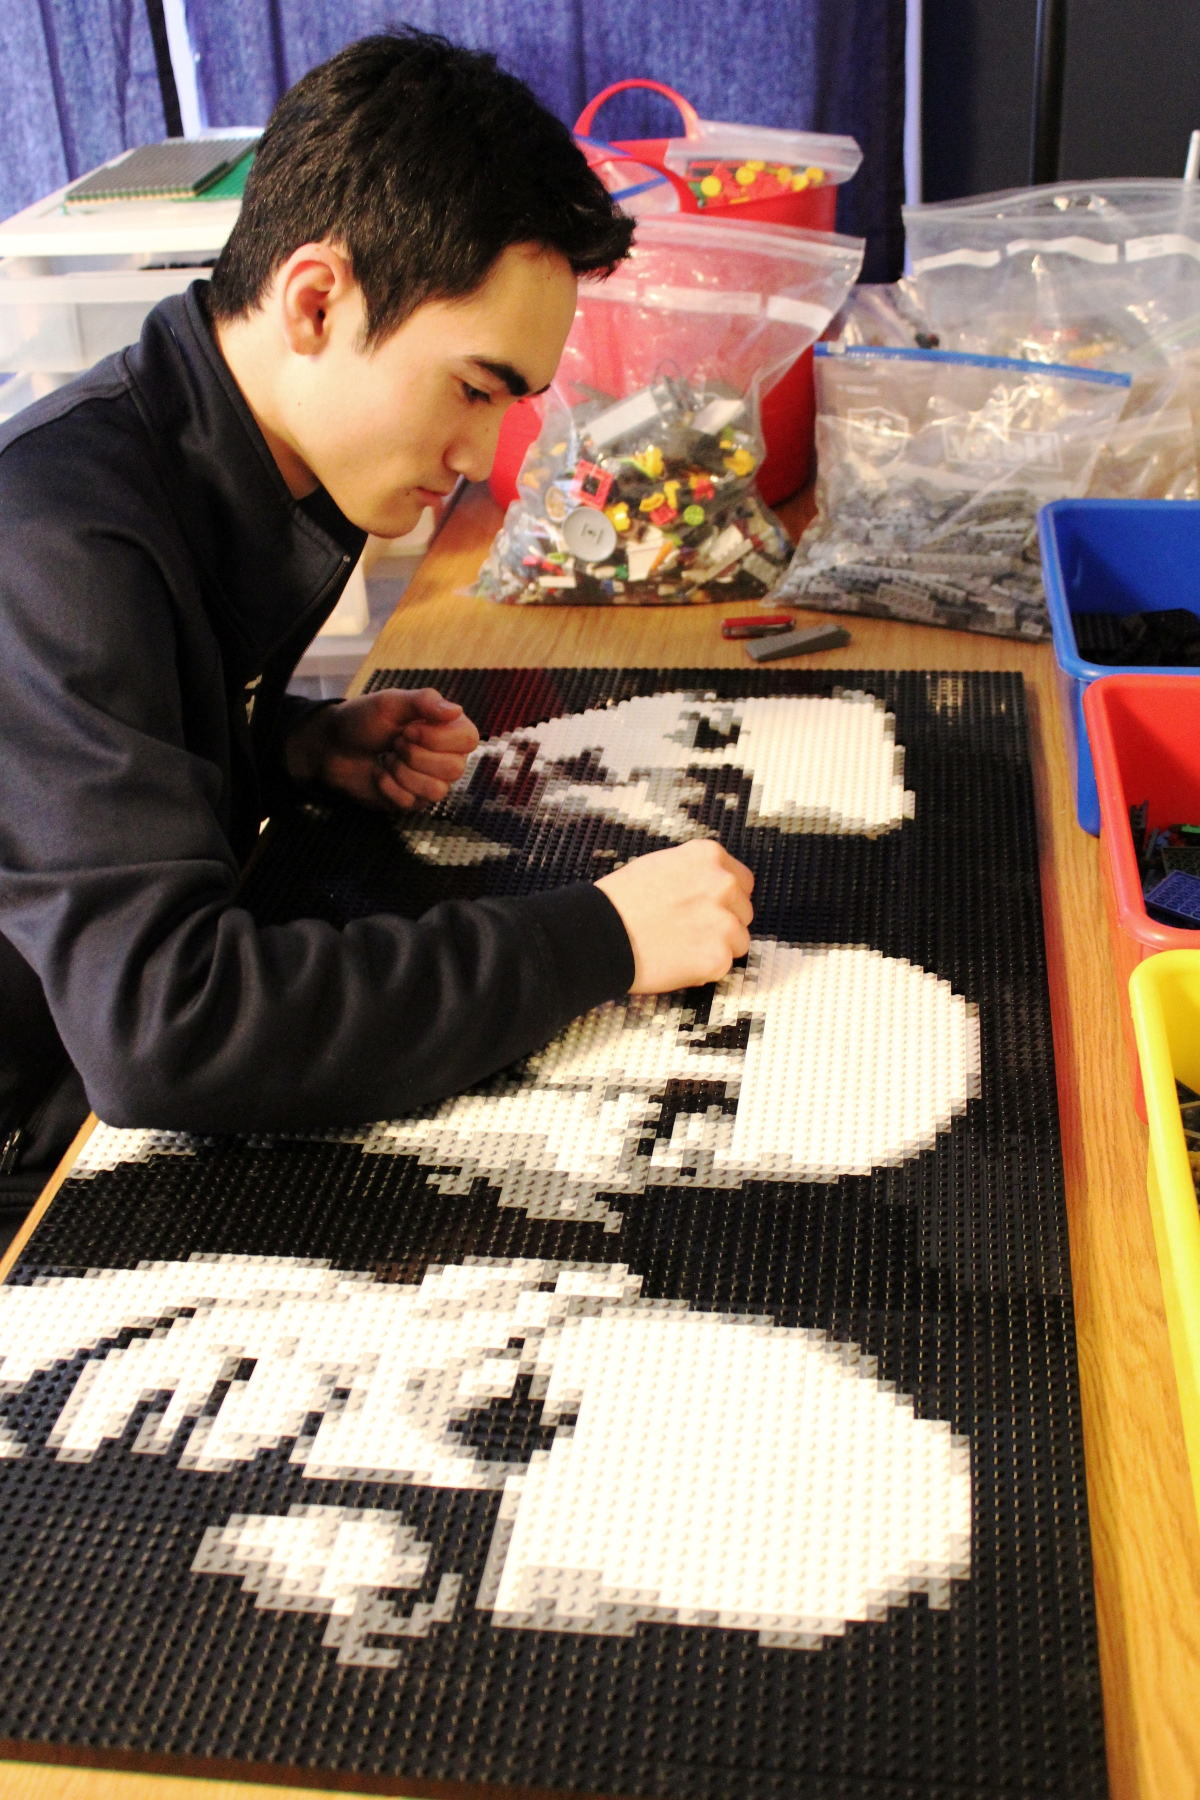 Working on LEGO Mosaic